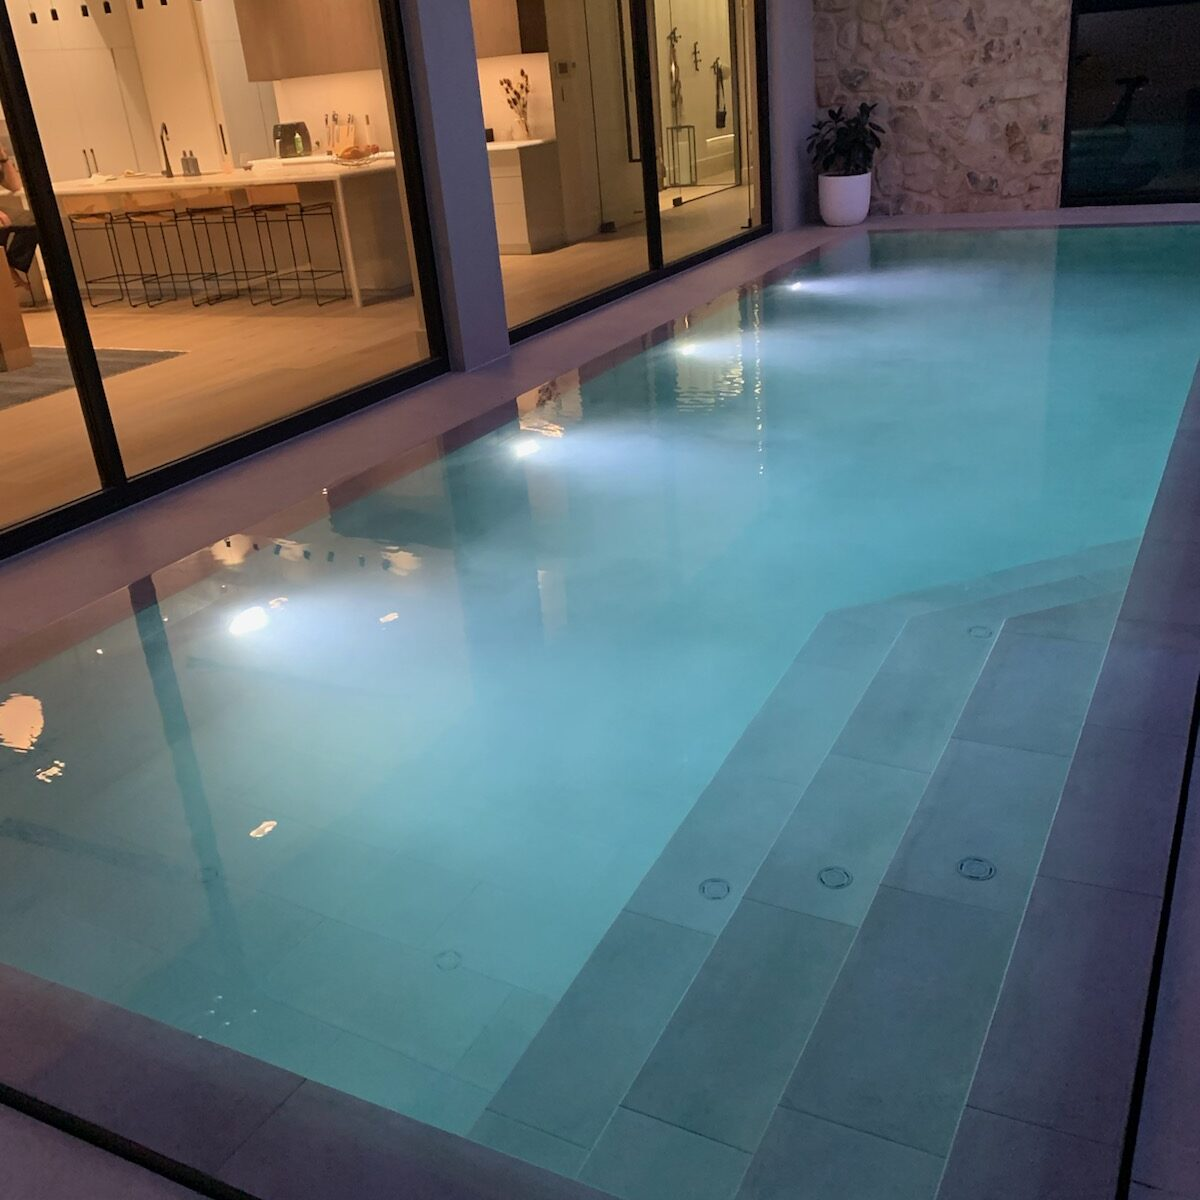 """<a href=""""https://synergypoolandspa.com.au/contact/"""">Ask About Our Design Options</a><a href=""""https://synergypoolandspa.com.au/contact/"""">Ask About Our Design Options</a>"""